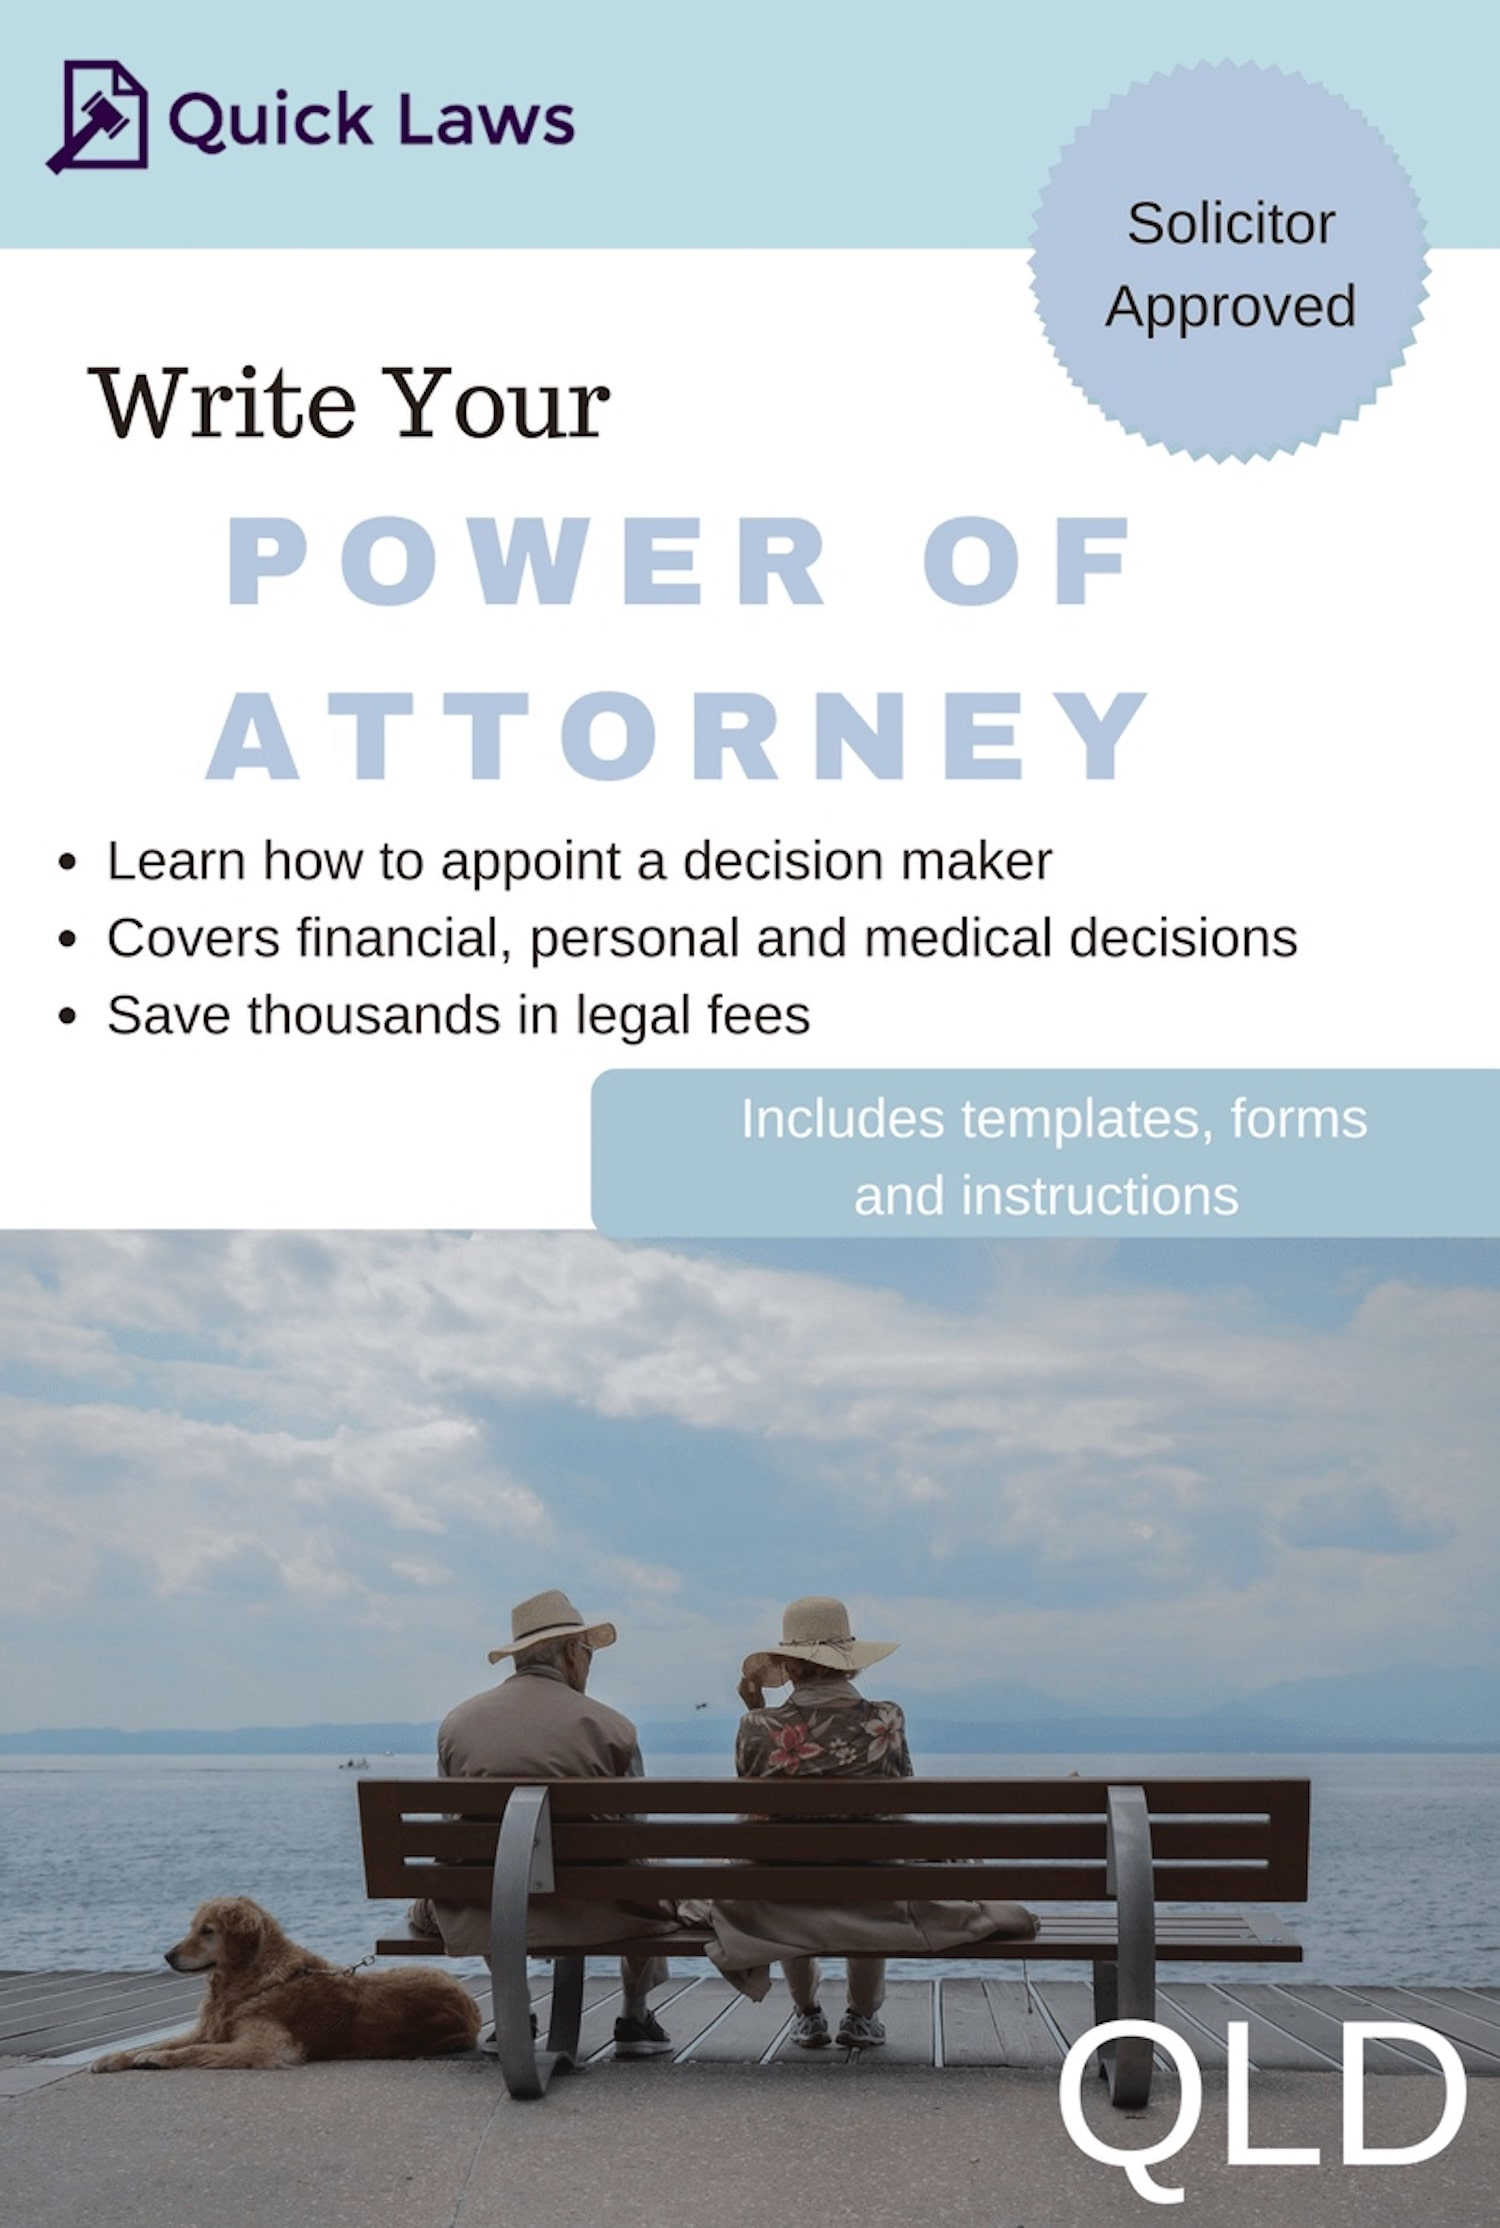 power of attorney form queensland australia  Power of Attorney kit (QLD) | Quick Laws